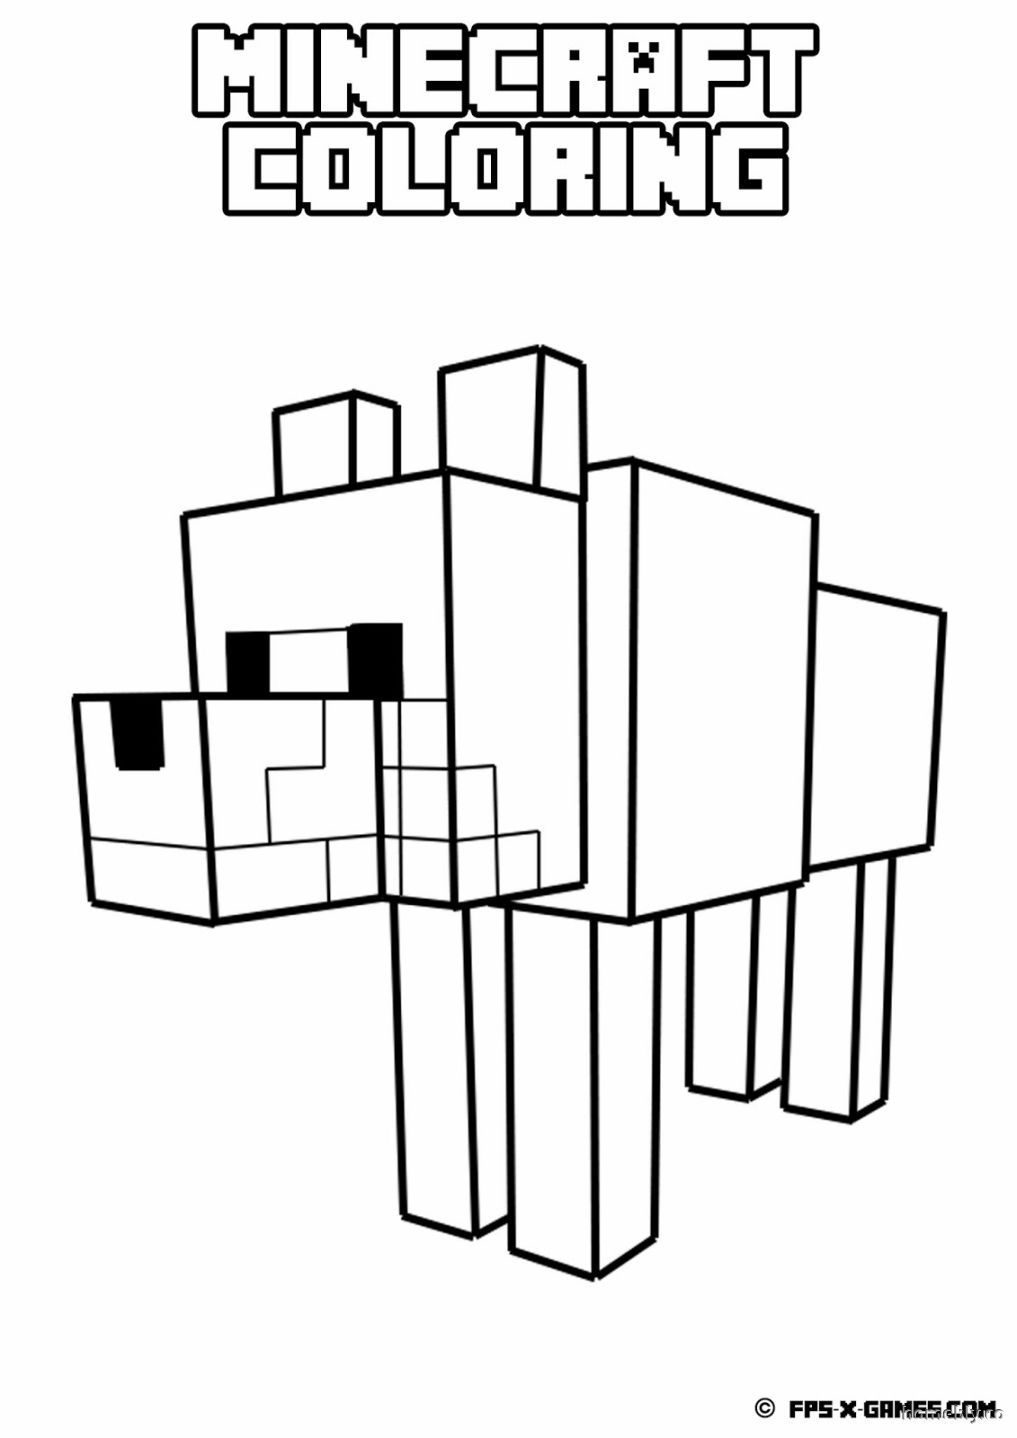 Minecraft Coloring Pages Free Coloring Pages Kostenlose Malvorlagen